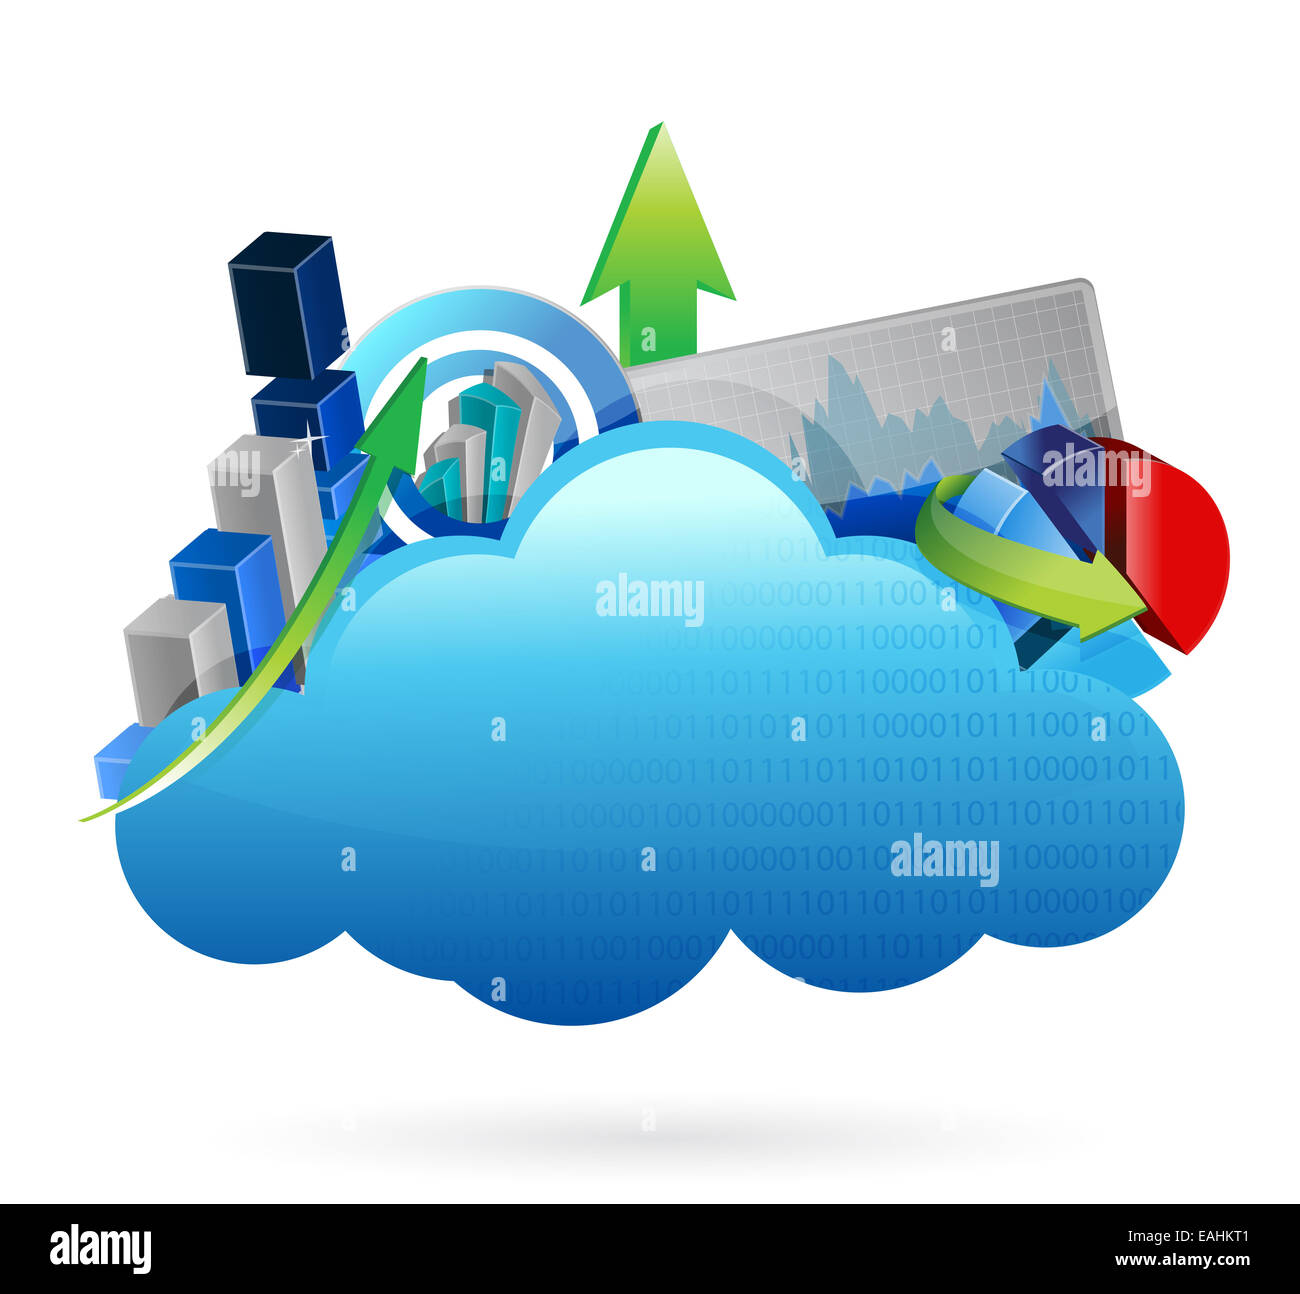 Business financial economy Cloud computing concept - Stock Image